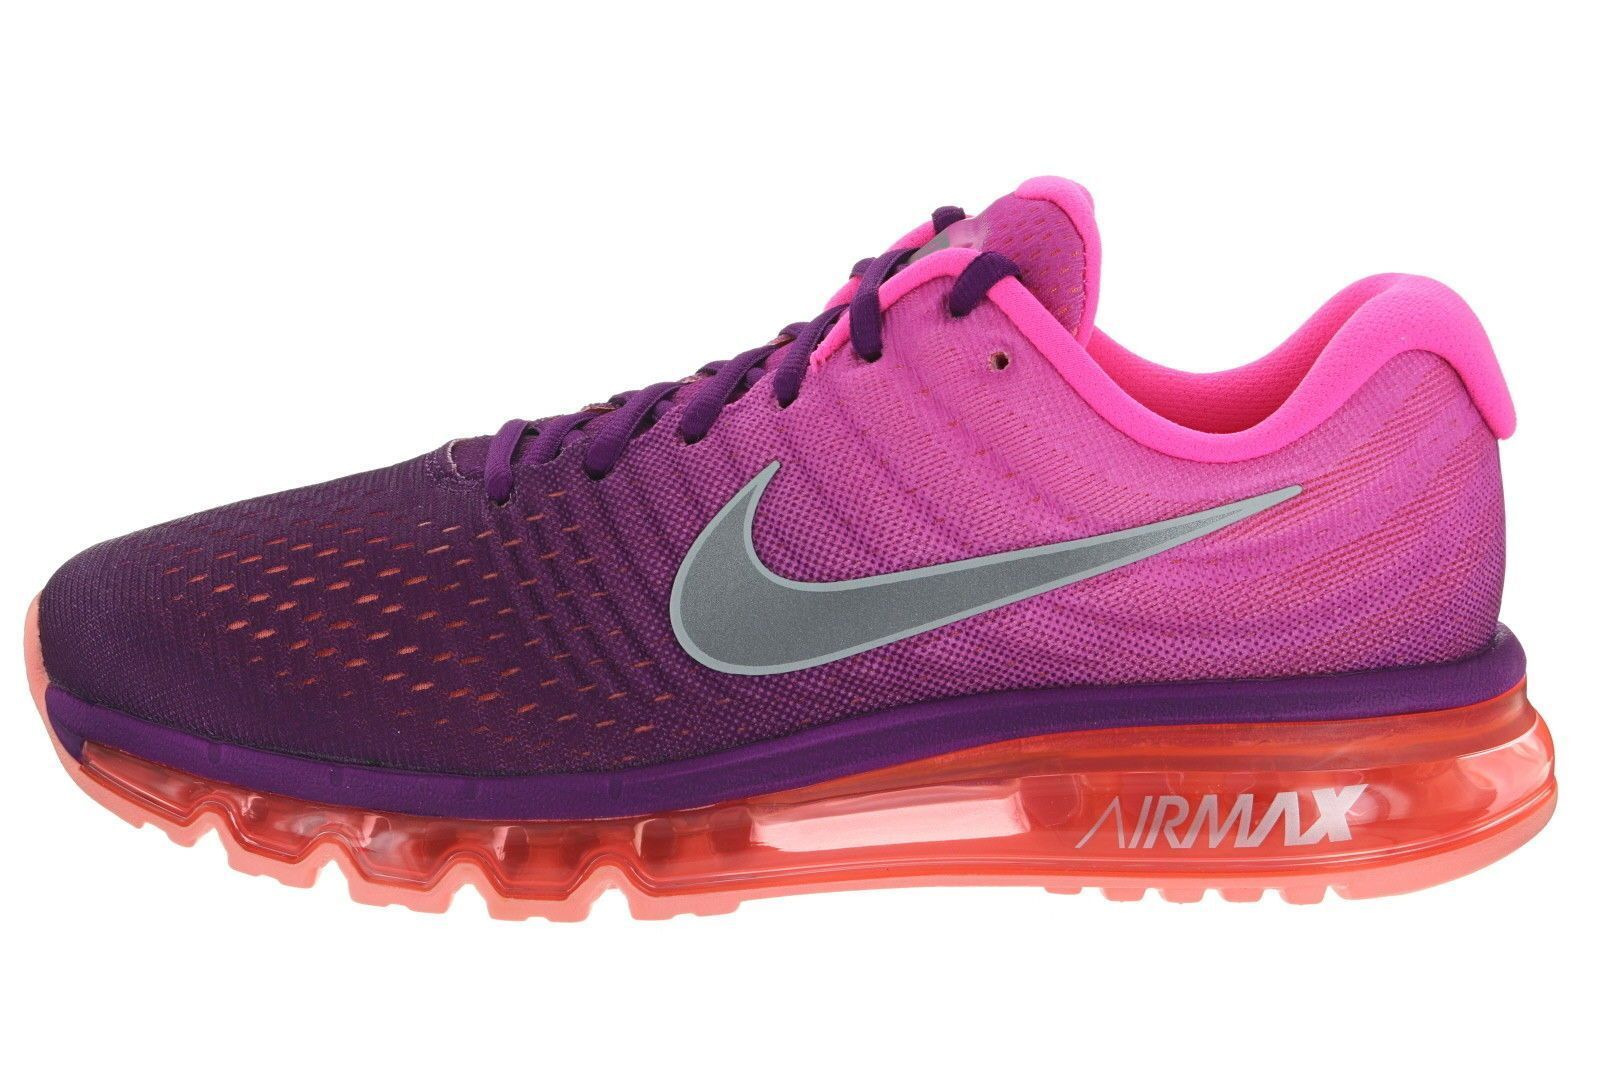 NIKE NIKE NIKE AIR MAX 2017 Wmn Sz 7 BRIGHT GRAPE FIRE PINK RUNNING 849560 502 1d776a